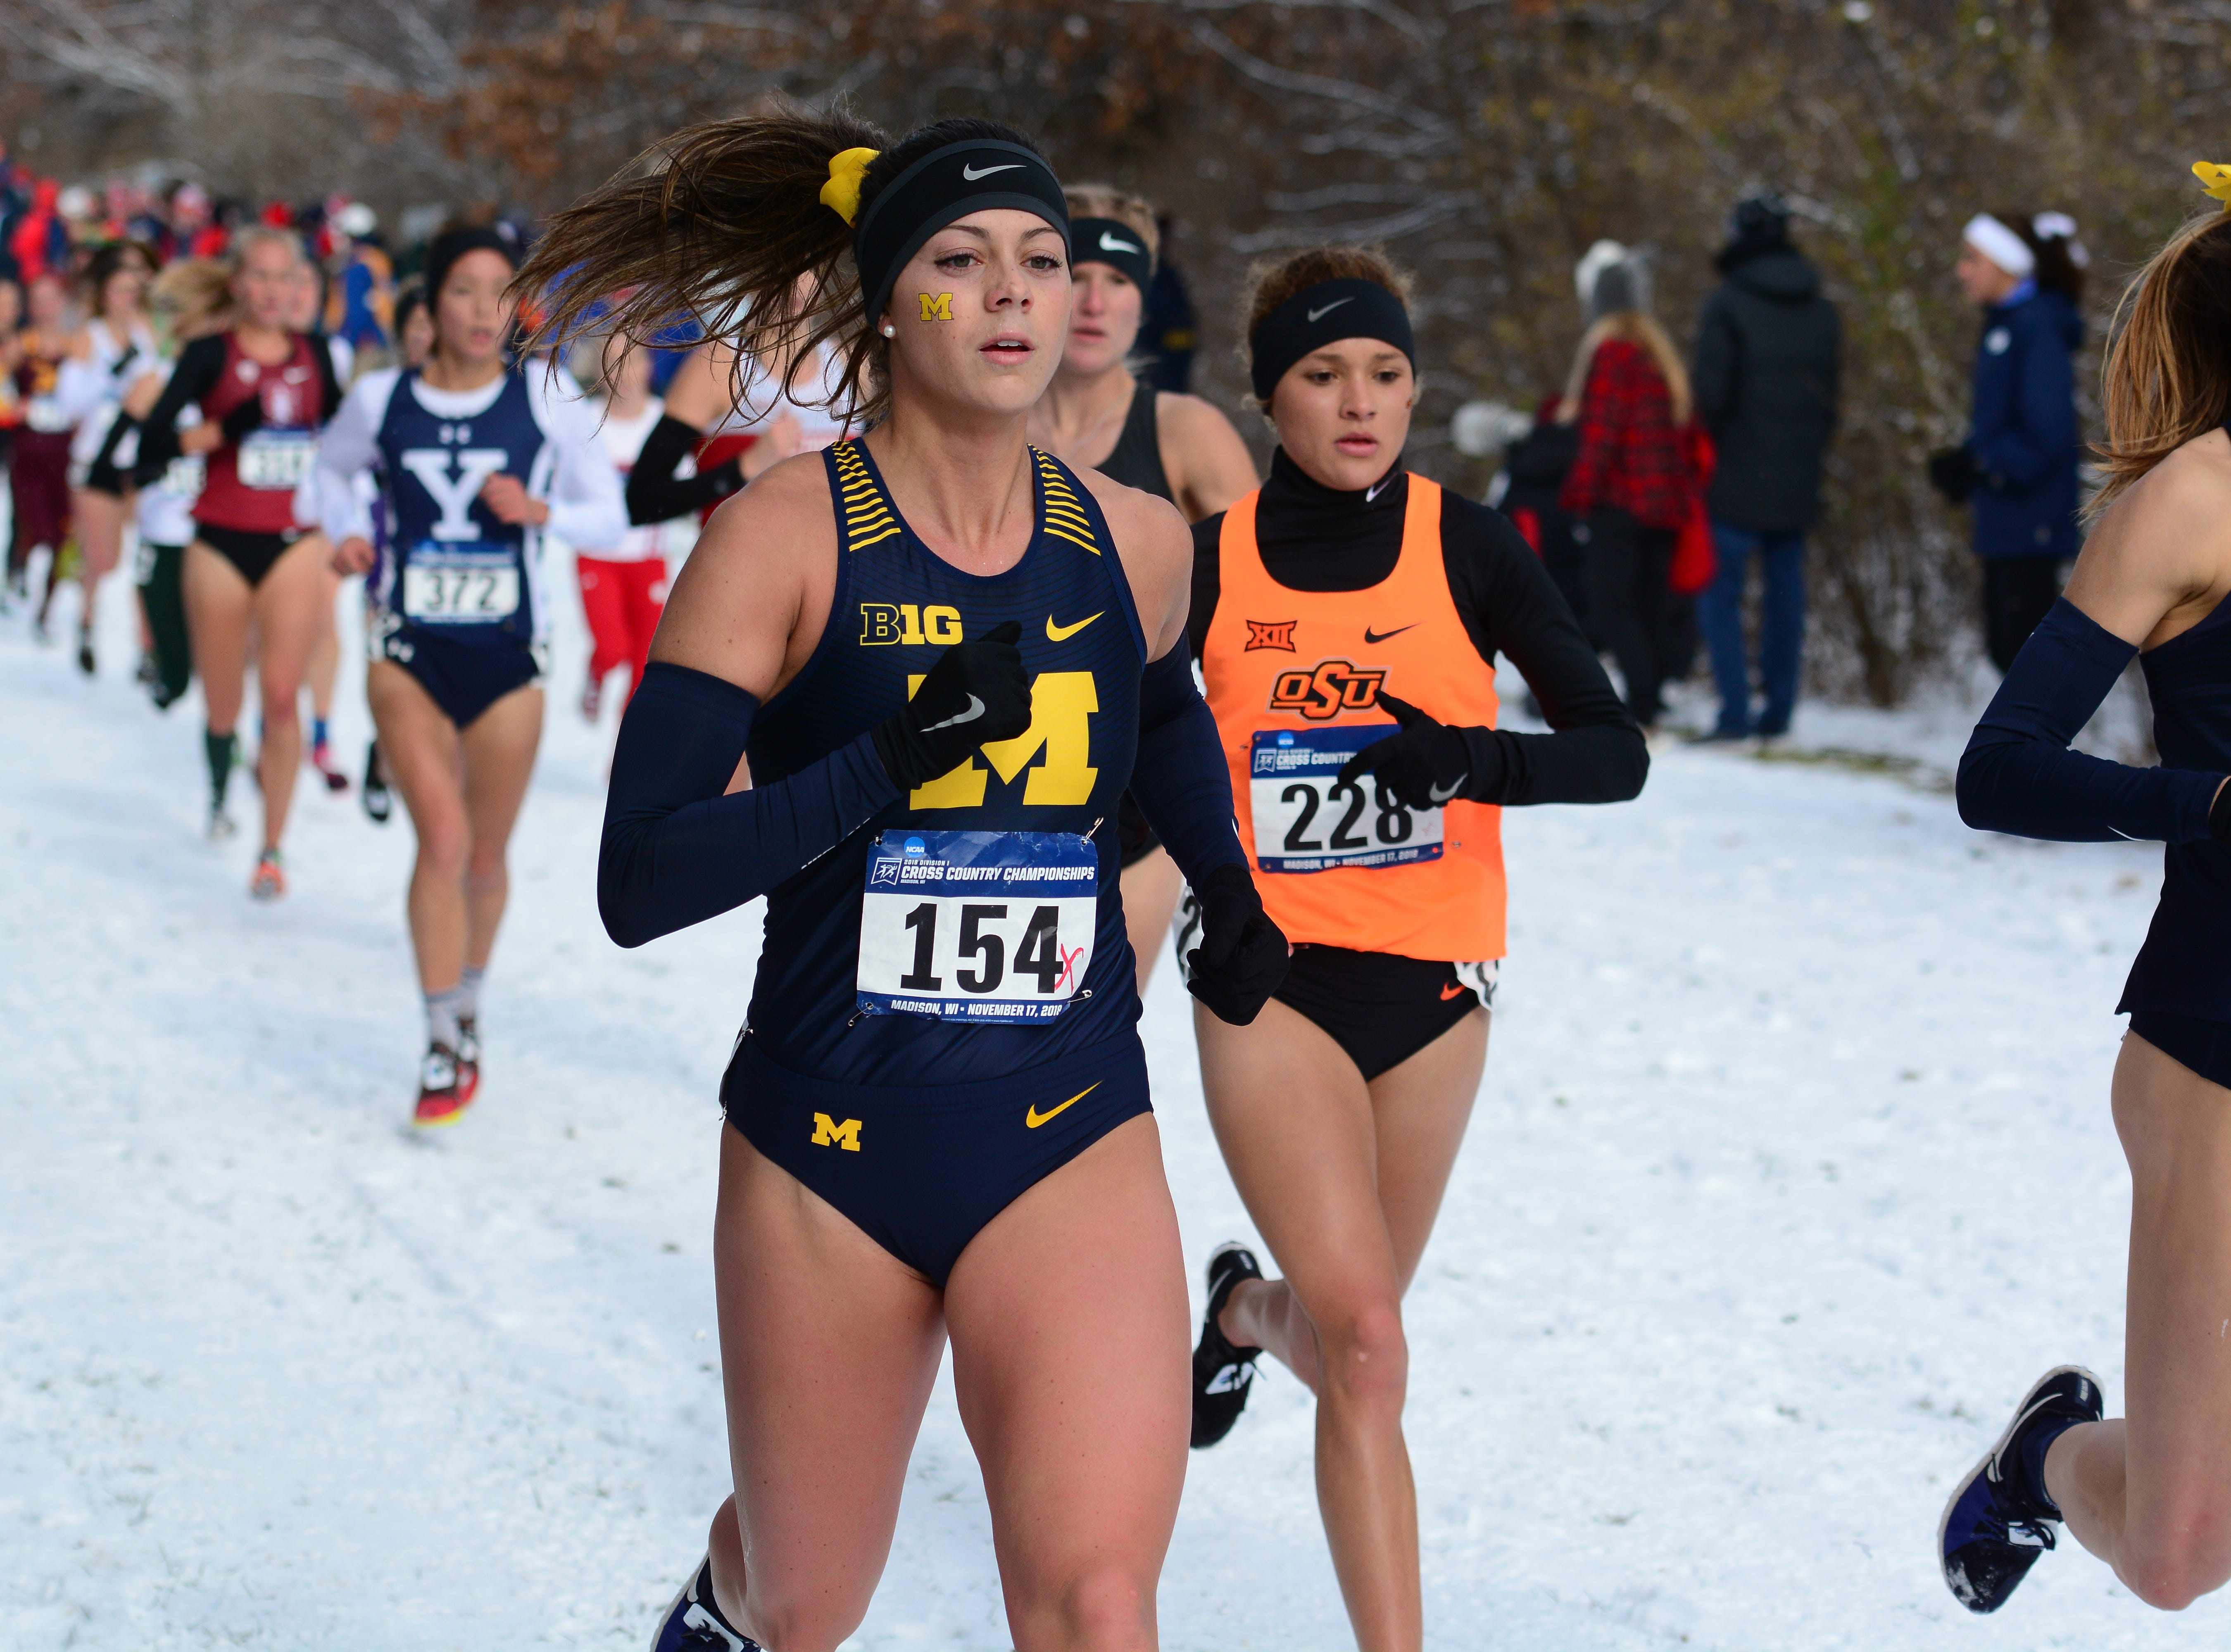 Hartland's Avery Evenson earns All-America in final cross country race at Michigan